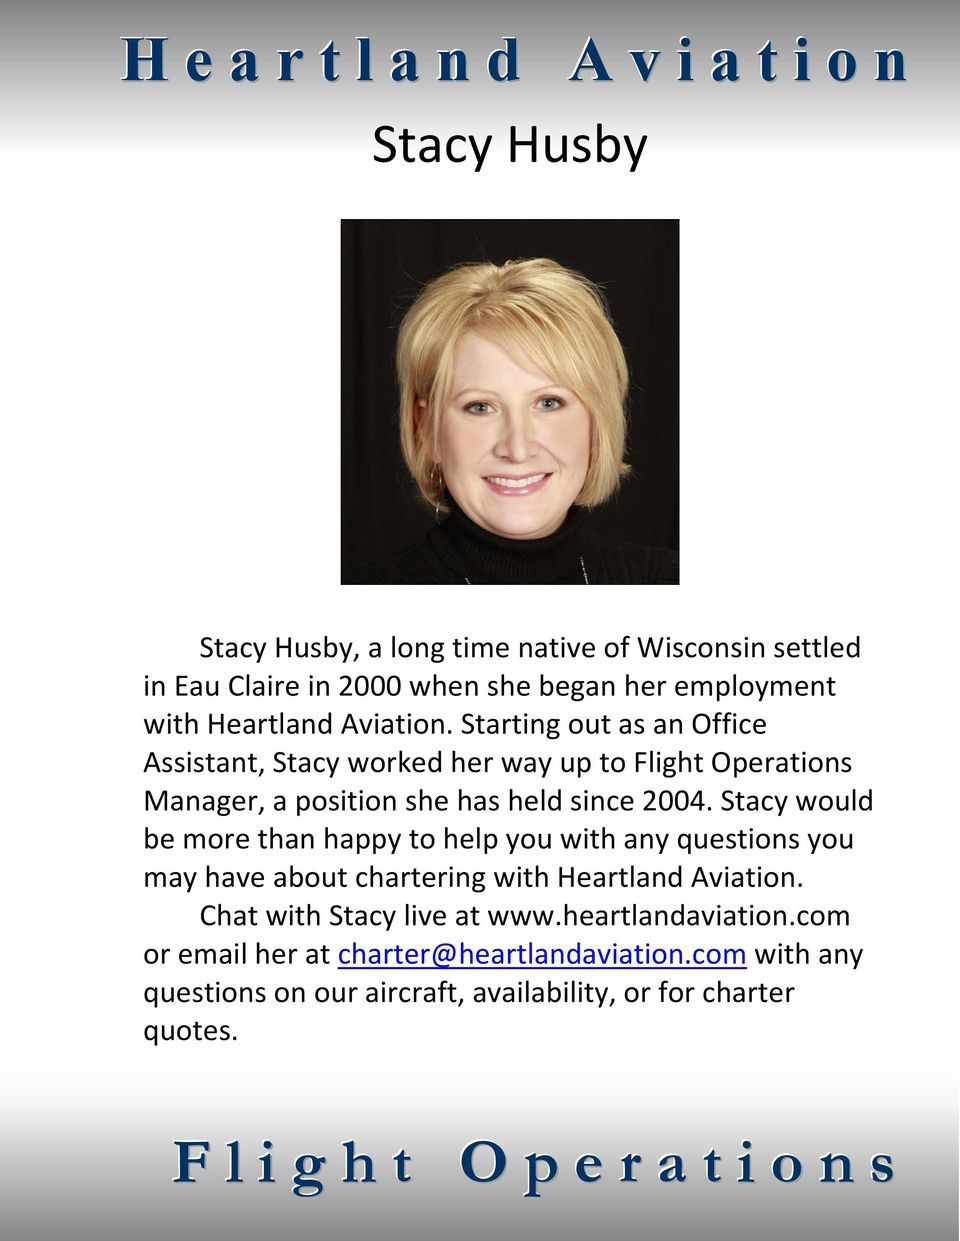 Stacy would be more than happy to help you with any questions you may have about chartering with Heartland Aviation. Chat with Stacy live at www.